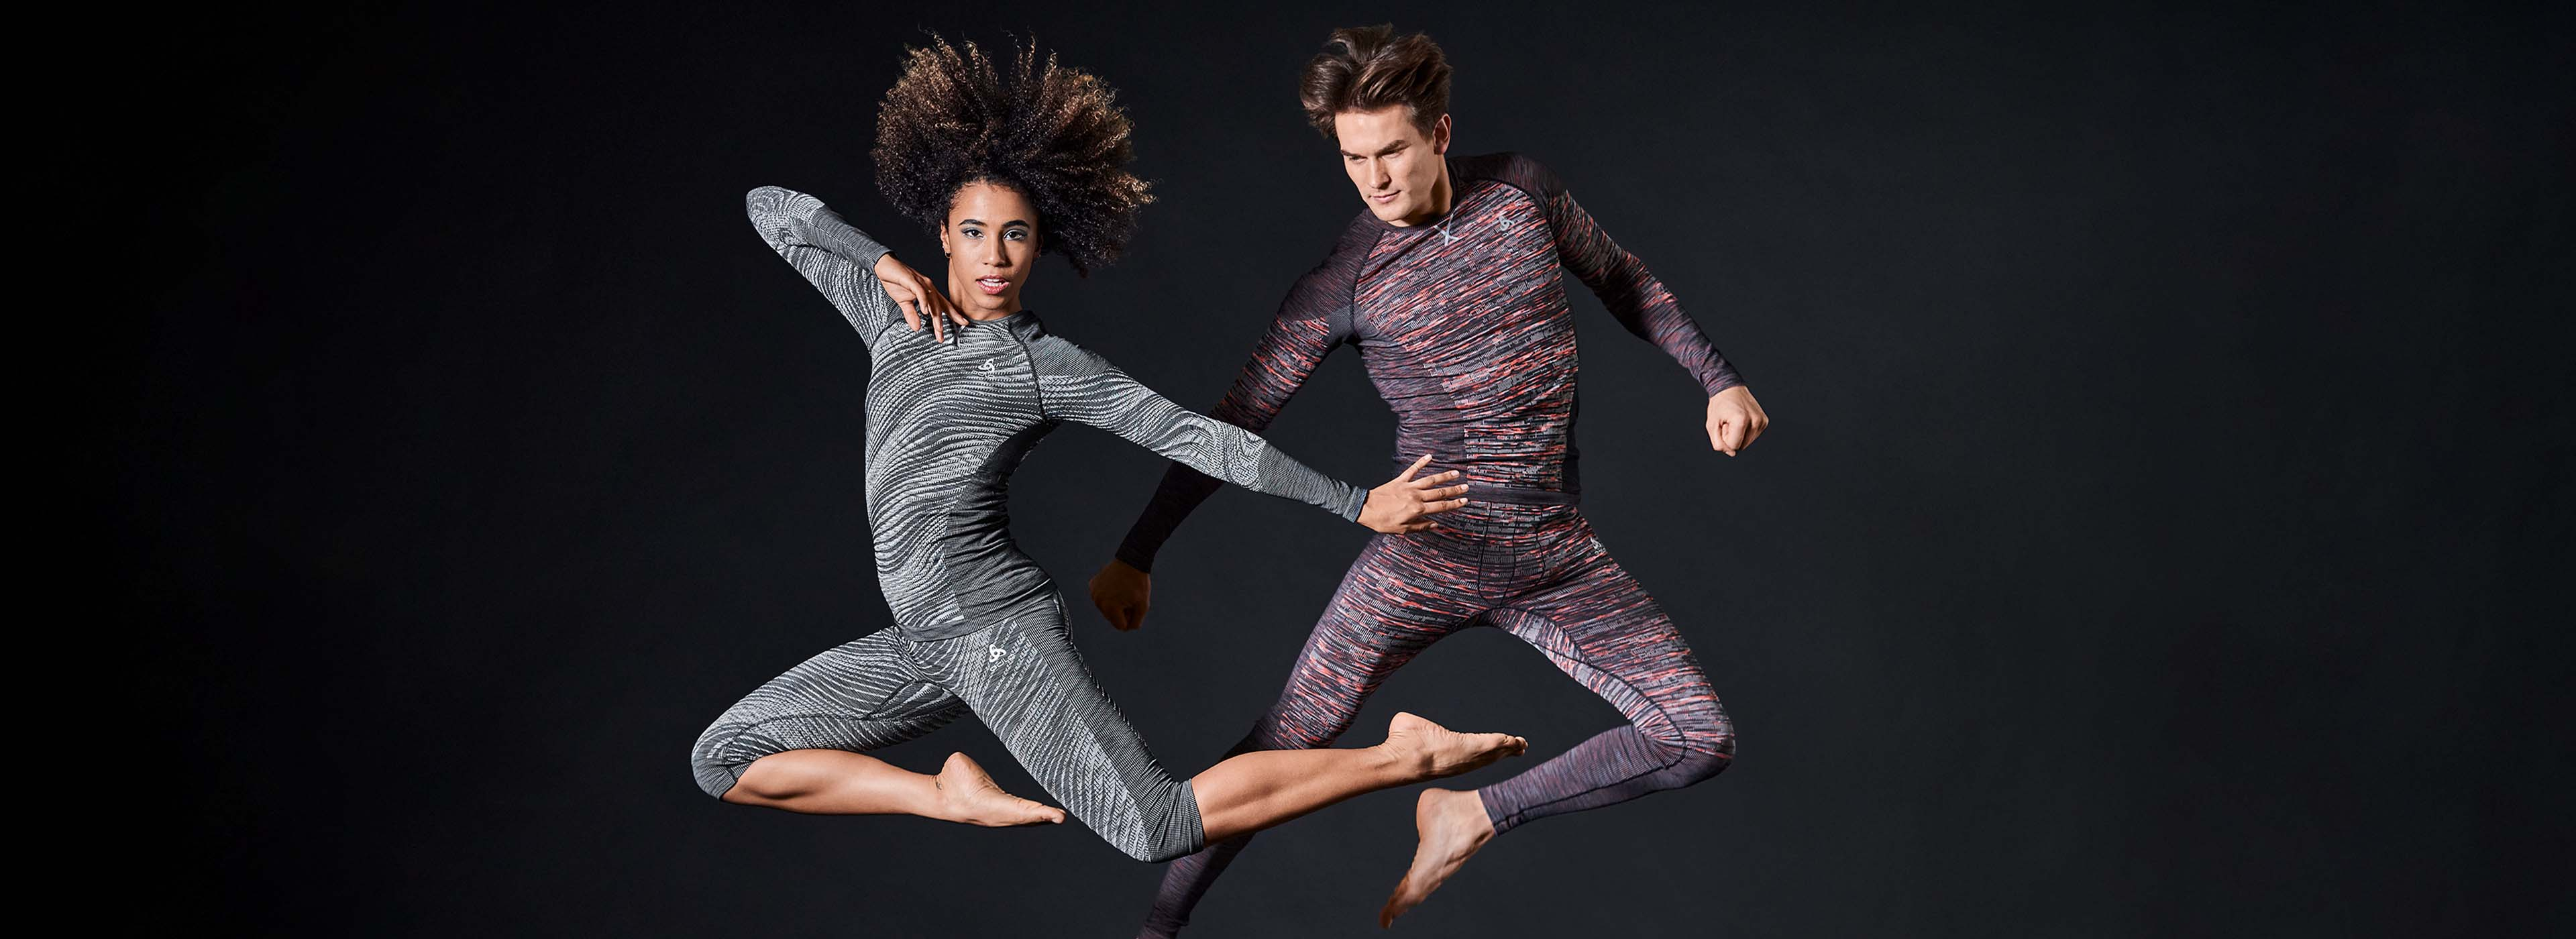 New base layer collection Fall Winter 2021